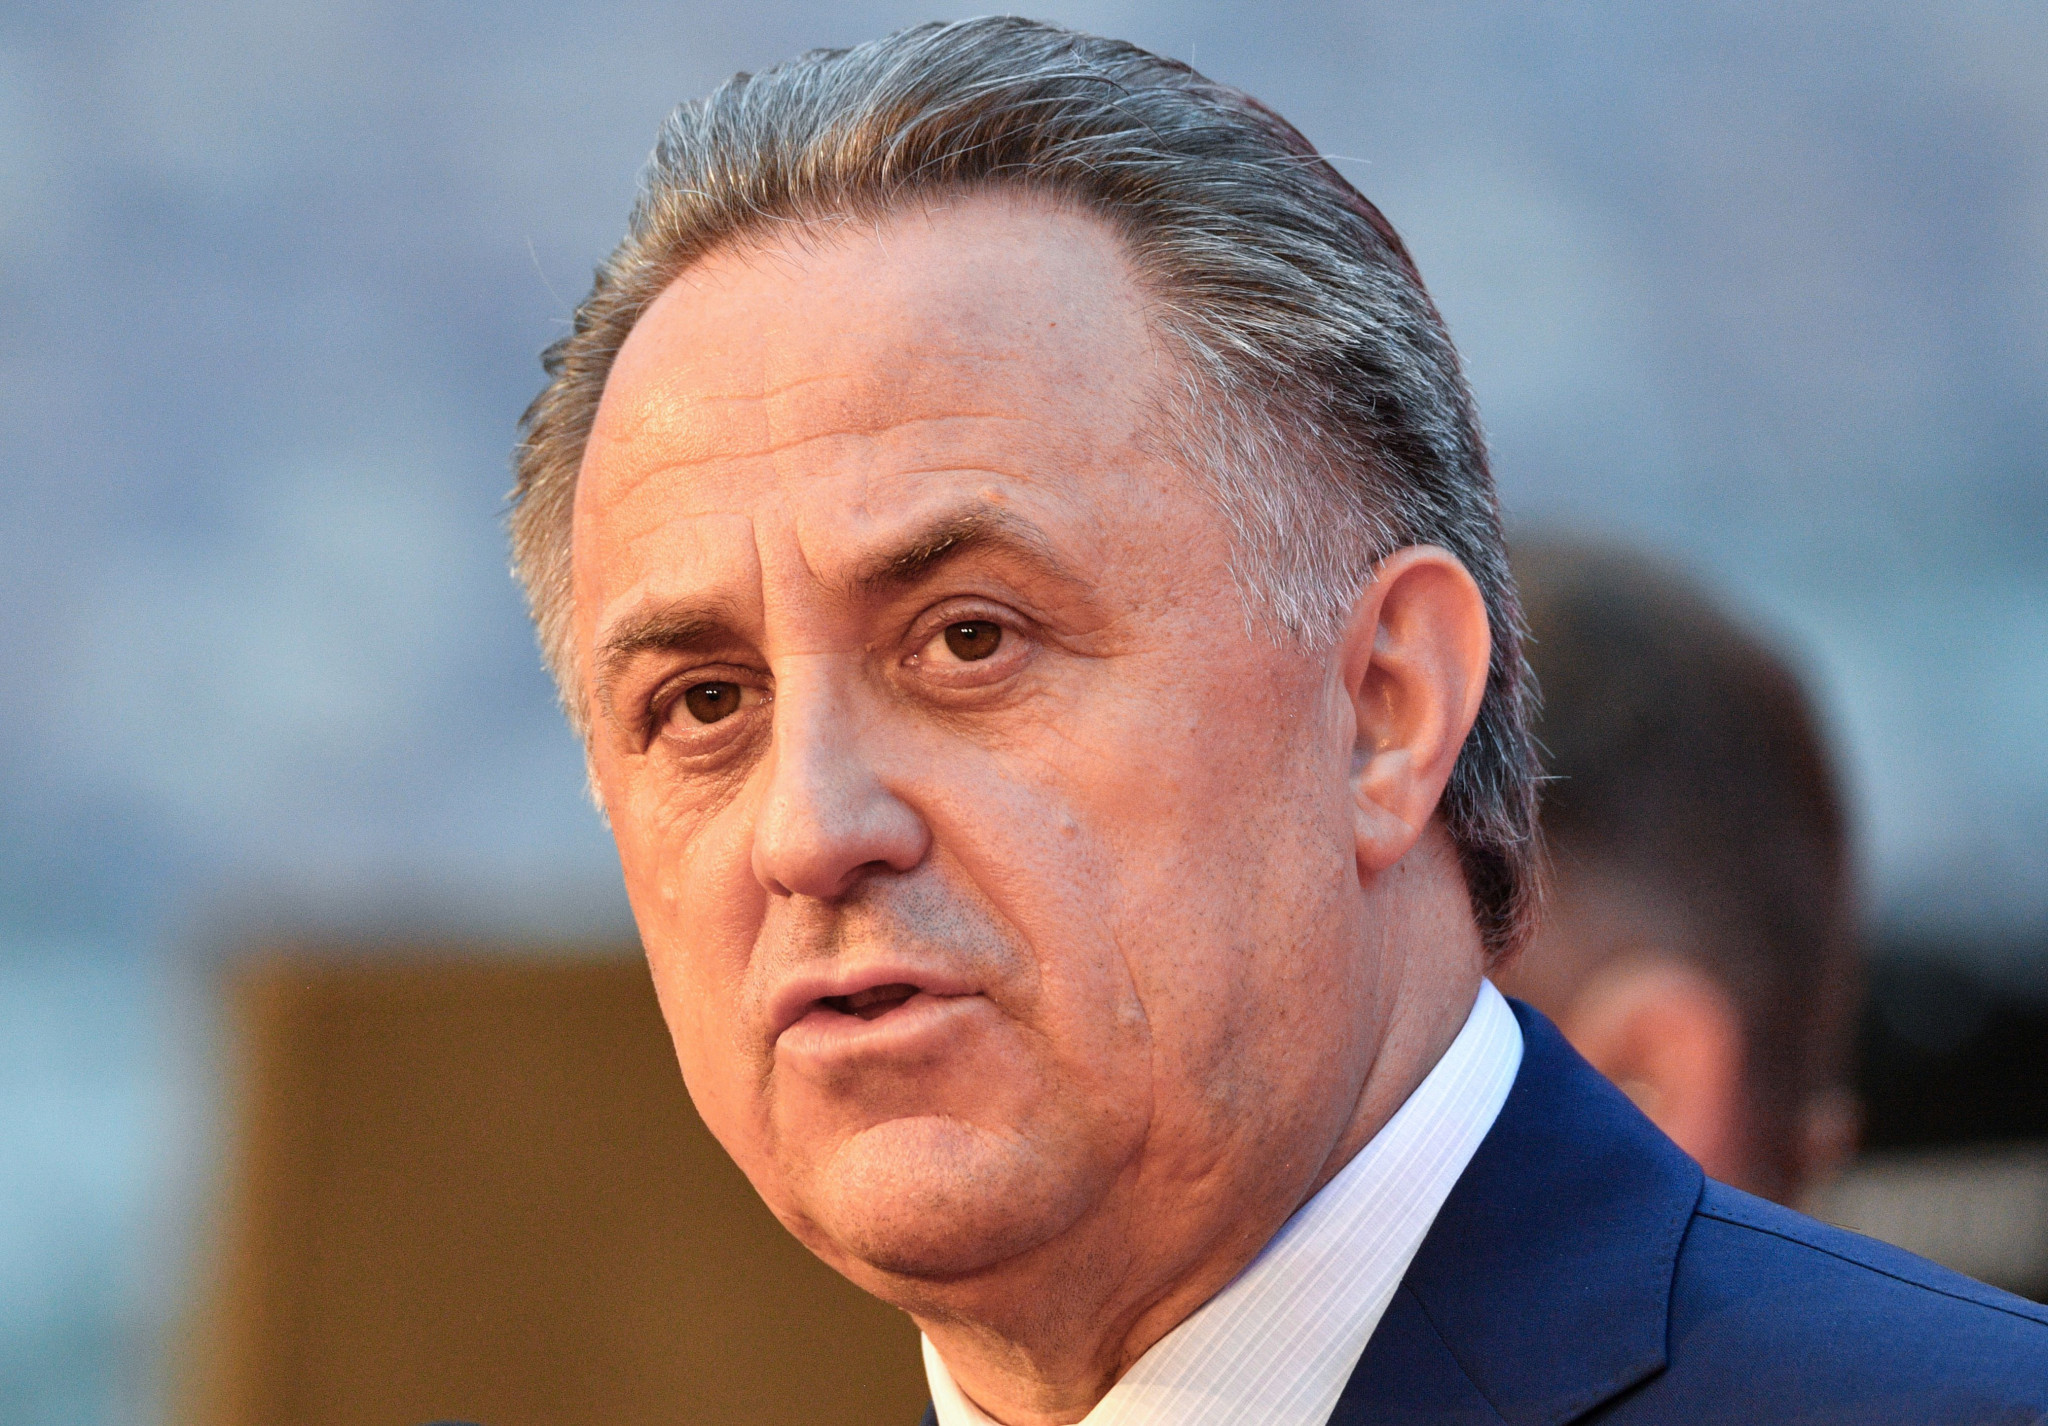 Vitaly Mutko is seen as someone who turned a blind eye to doping regimes rather than act as mastermind of them ©Getty Images